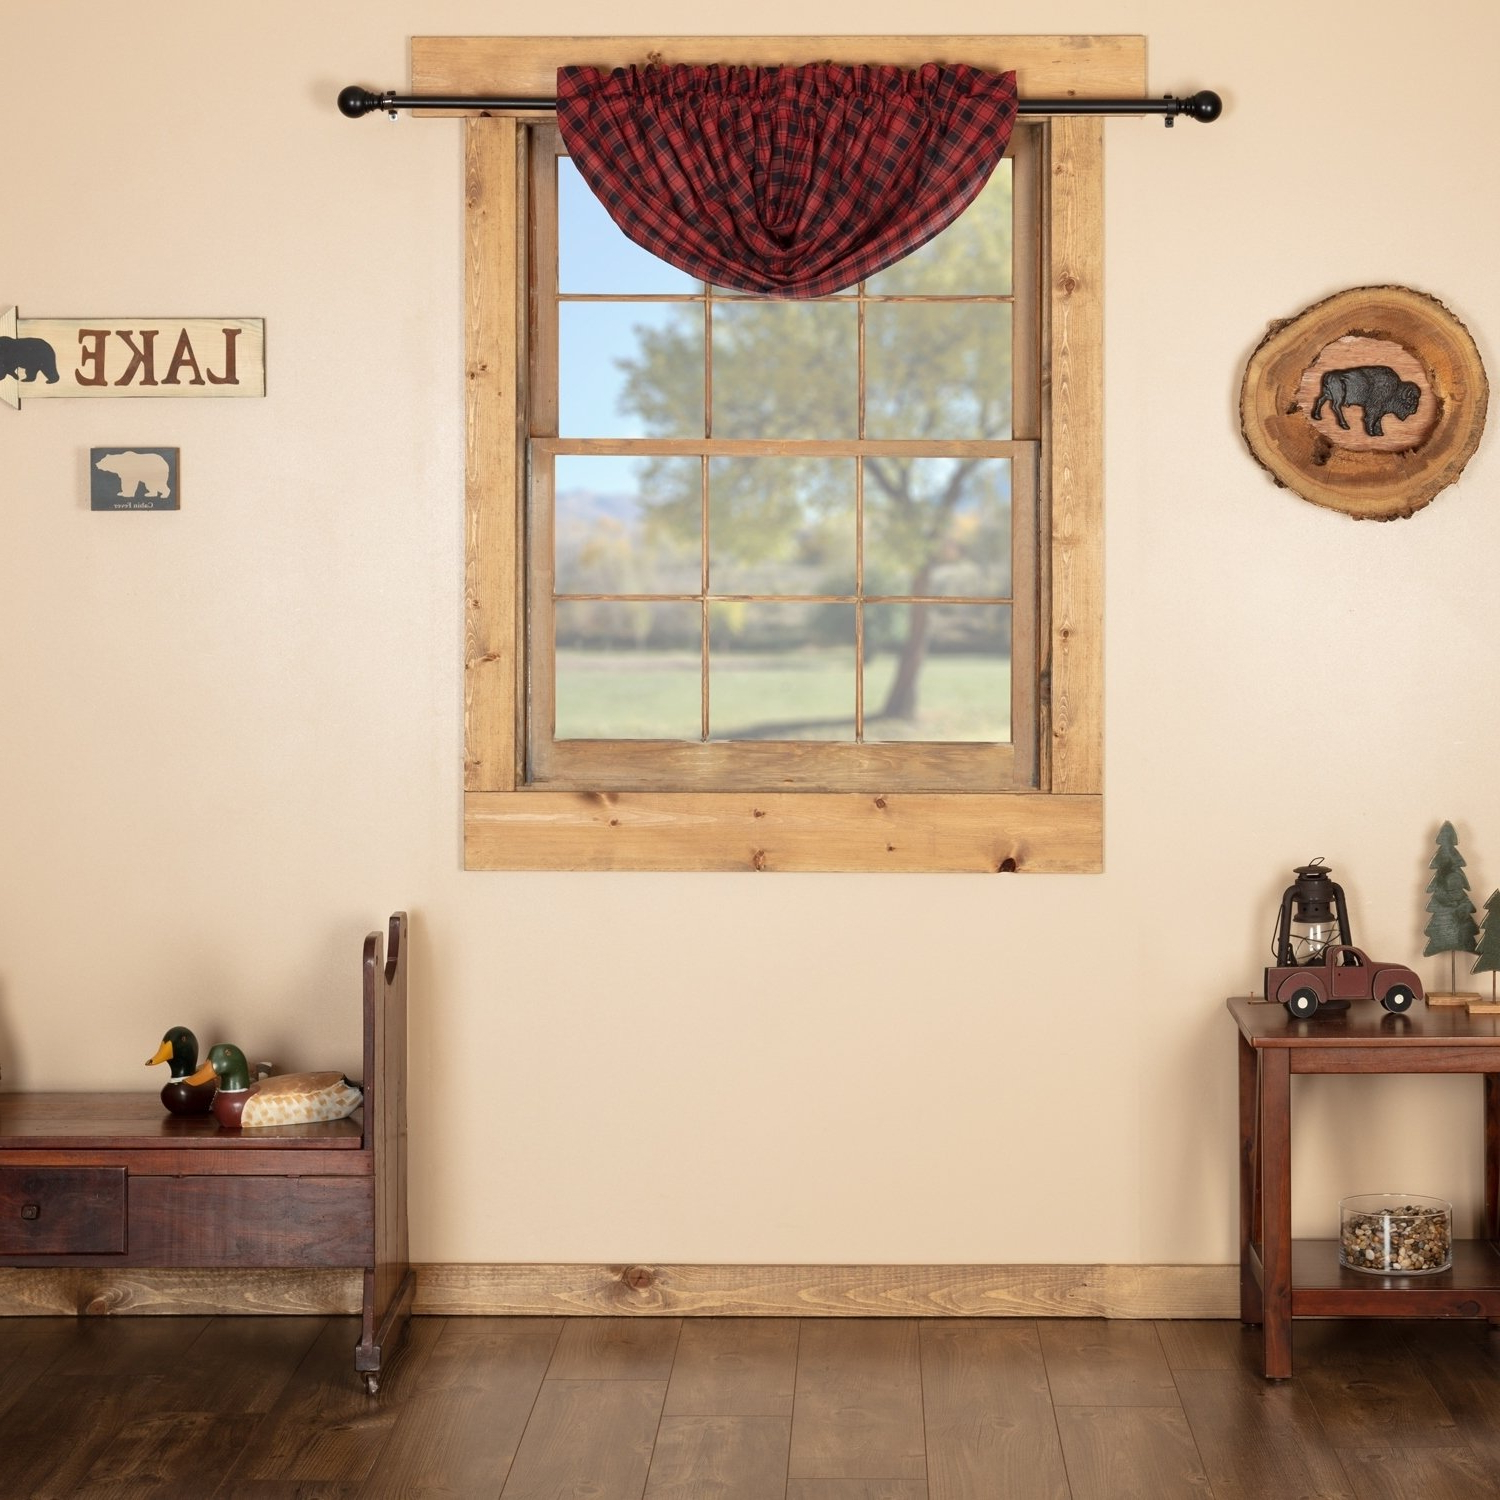 Red Rustic Kitchen Curtains In Current Red Rustic Kitchen Curtains Shasta Cabin Balloon Valance Rod (Gallery 4 of 20)